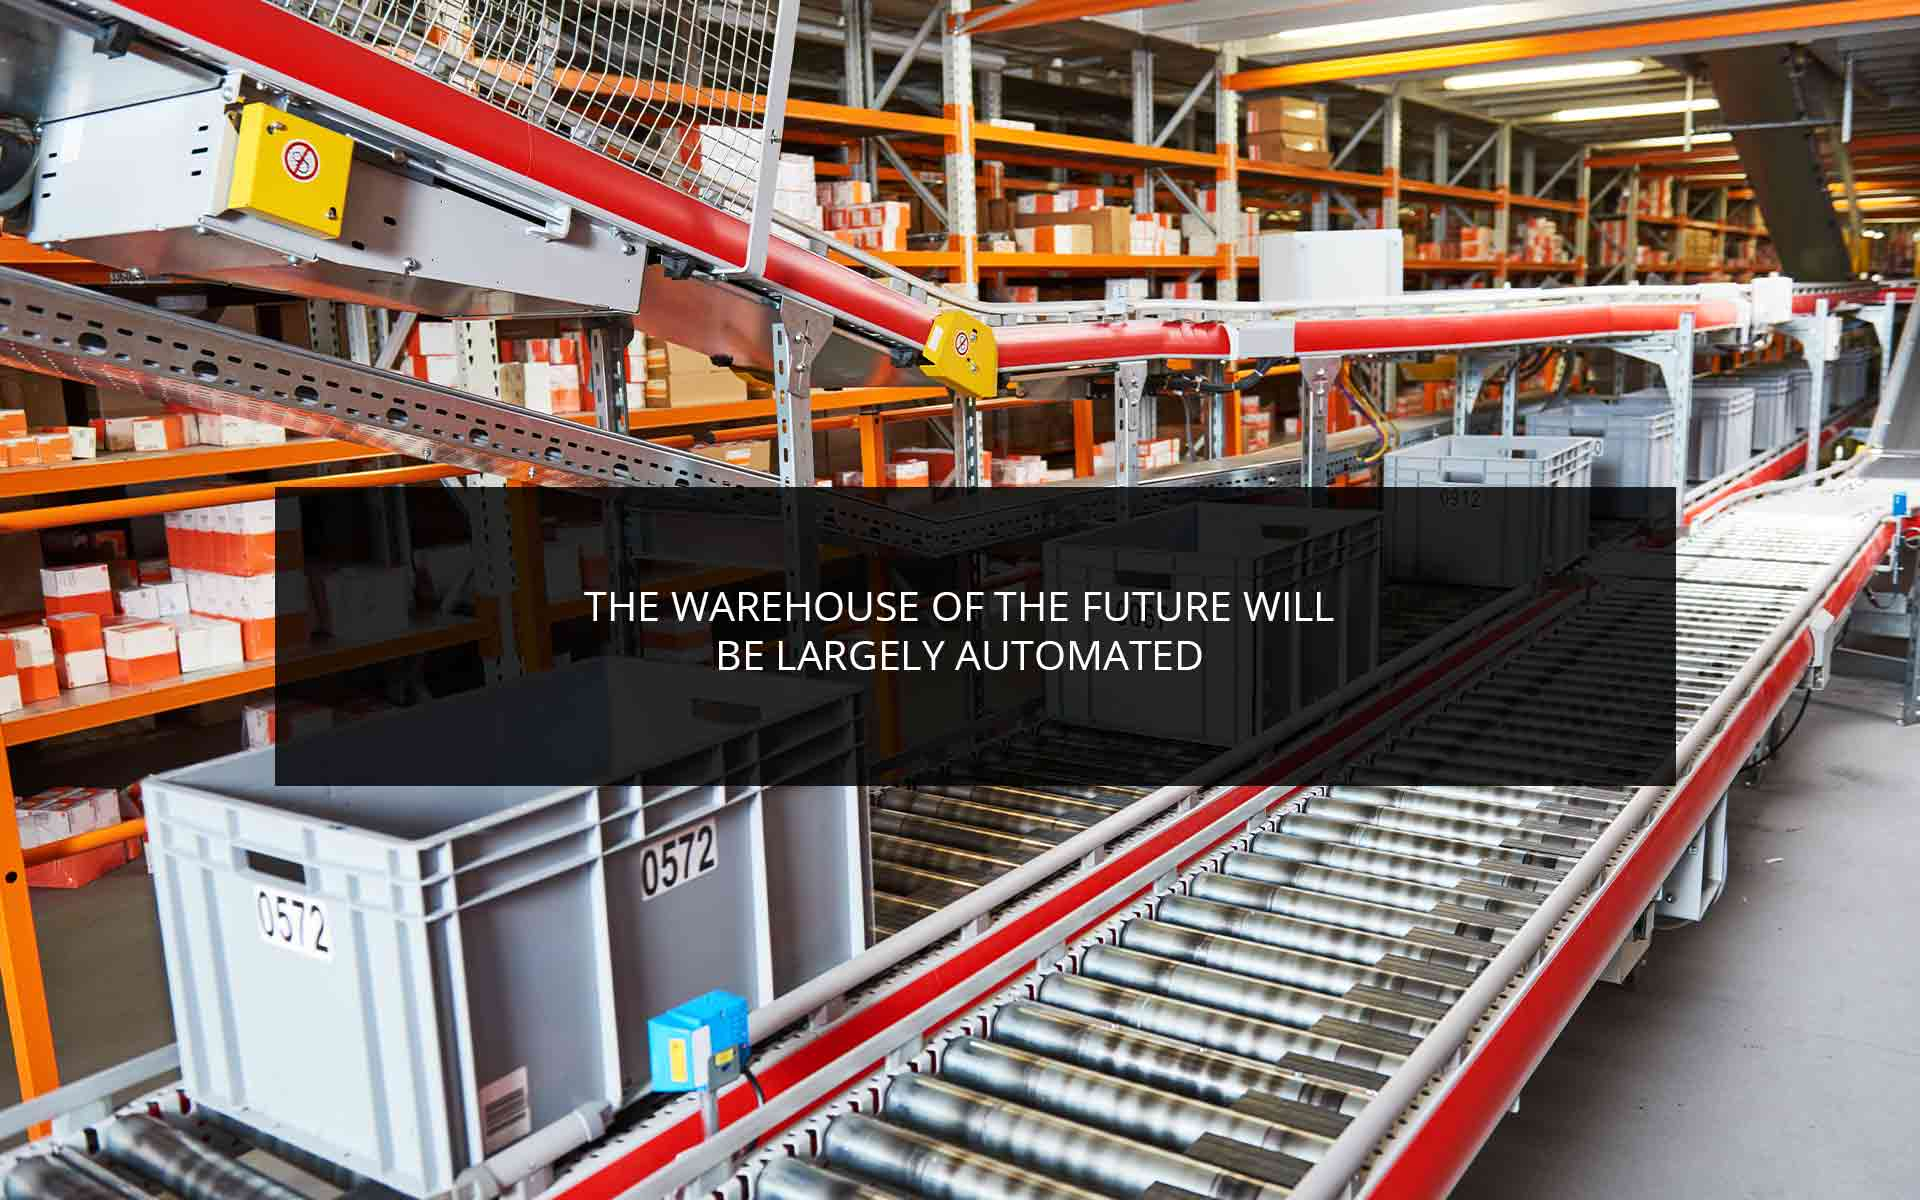 The Warehouse of the Future Will Be Largely Automated